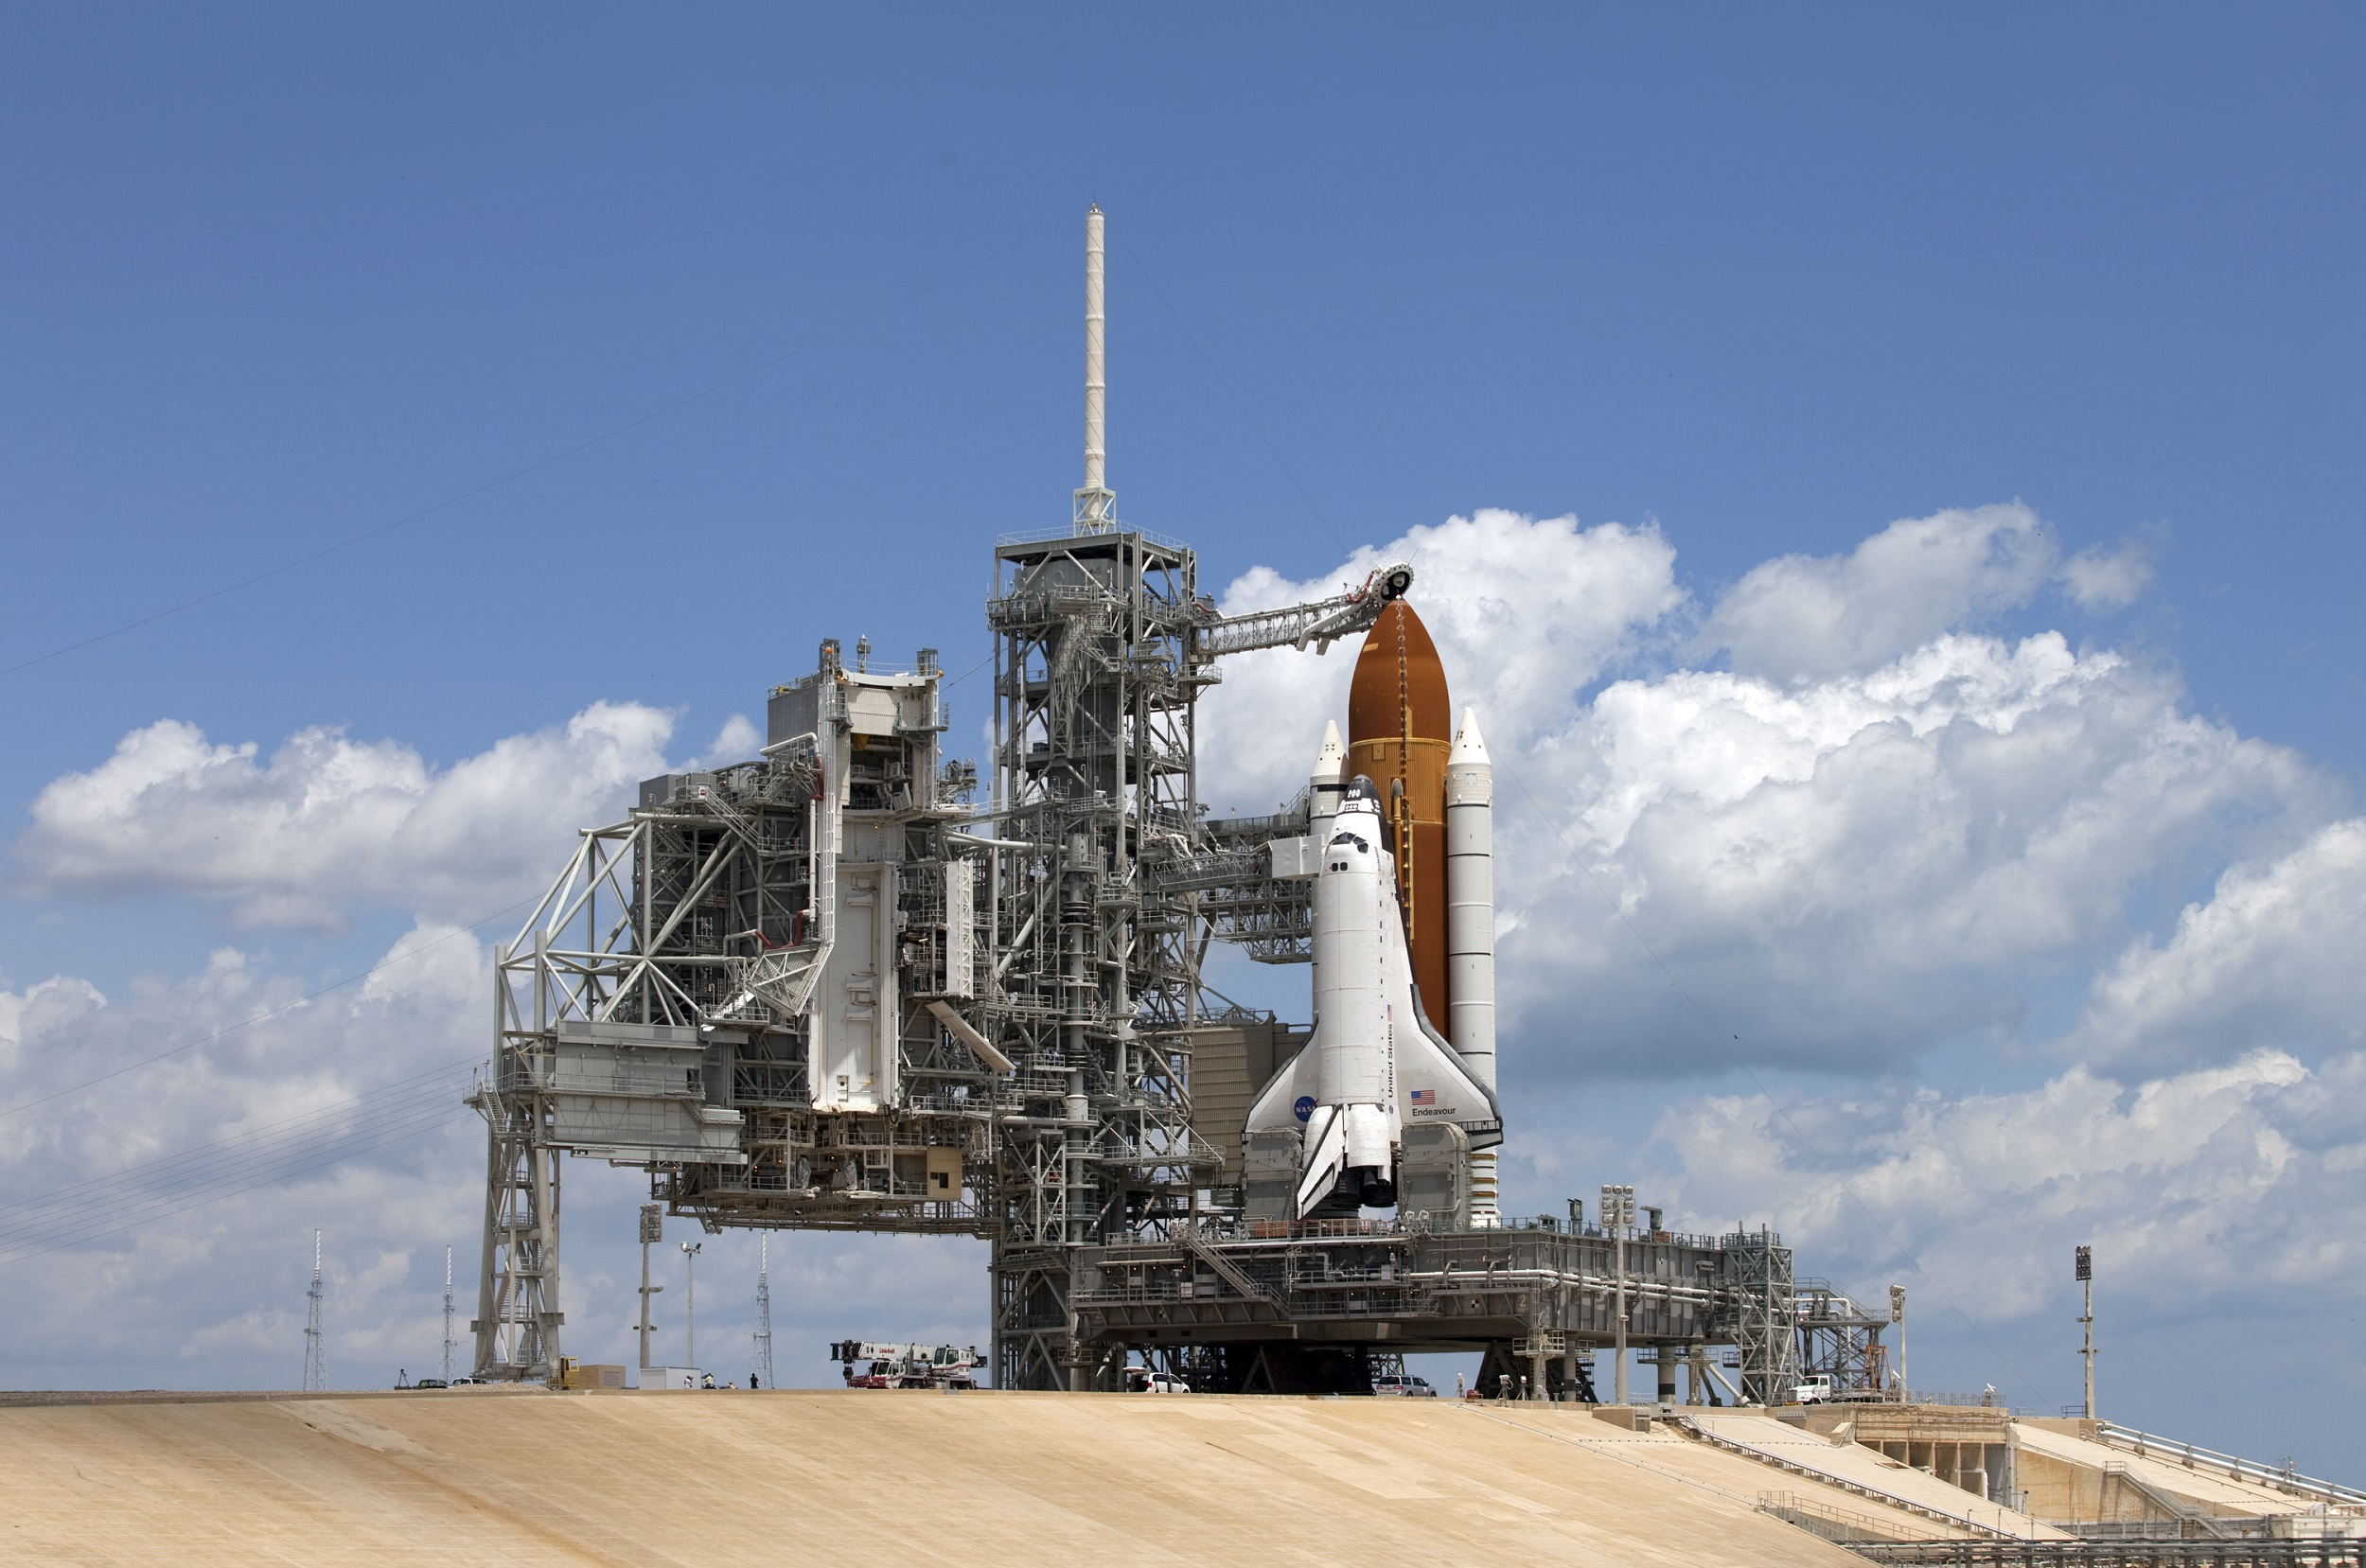 pad 39a launches graph - HD3000×1989